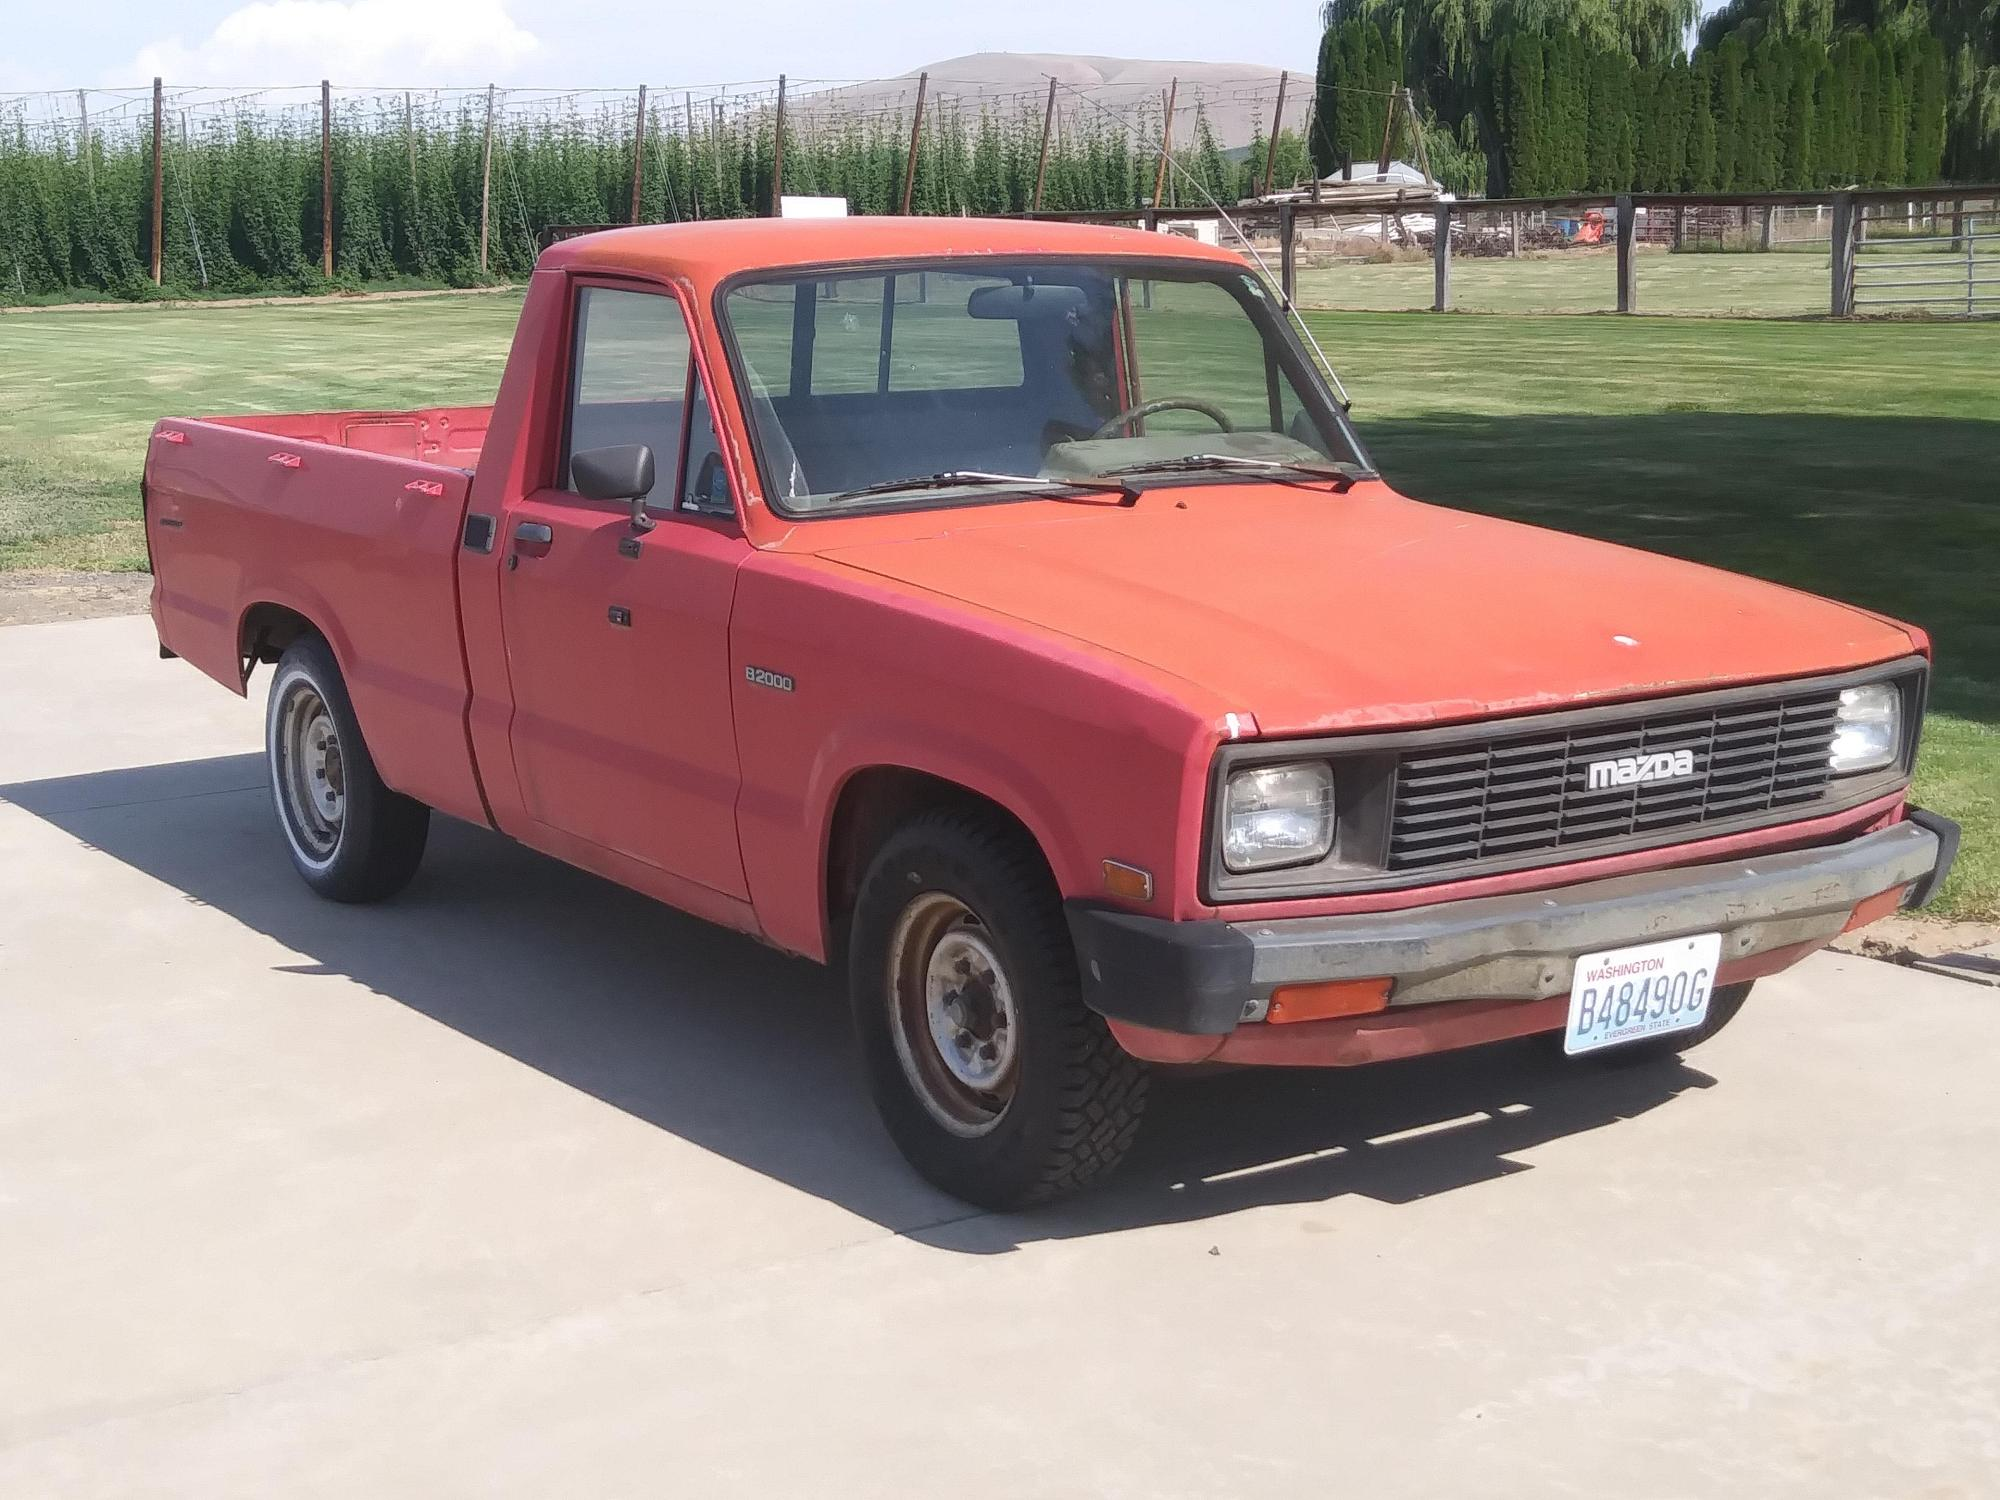 hight resolution of 1984 mazda b2000 sundowner nothing much but got big plans for it1984 mazda b2000 sundowner nothing